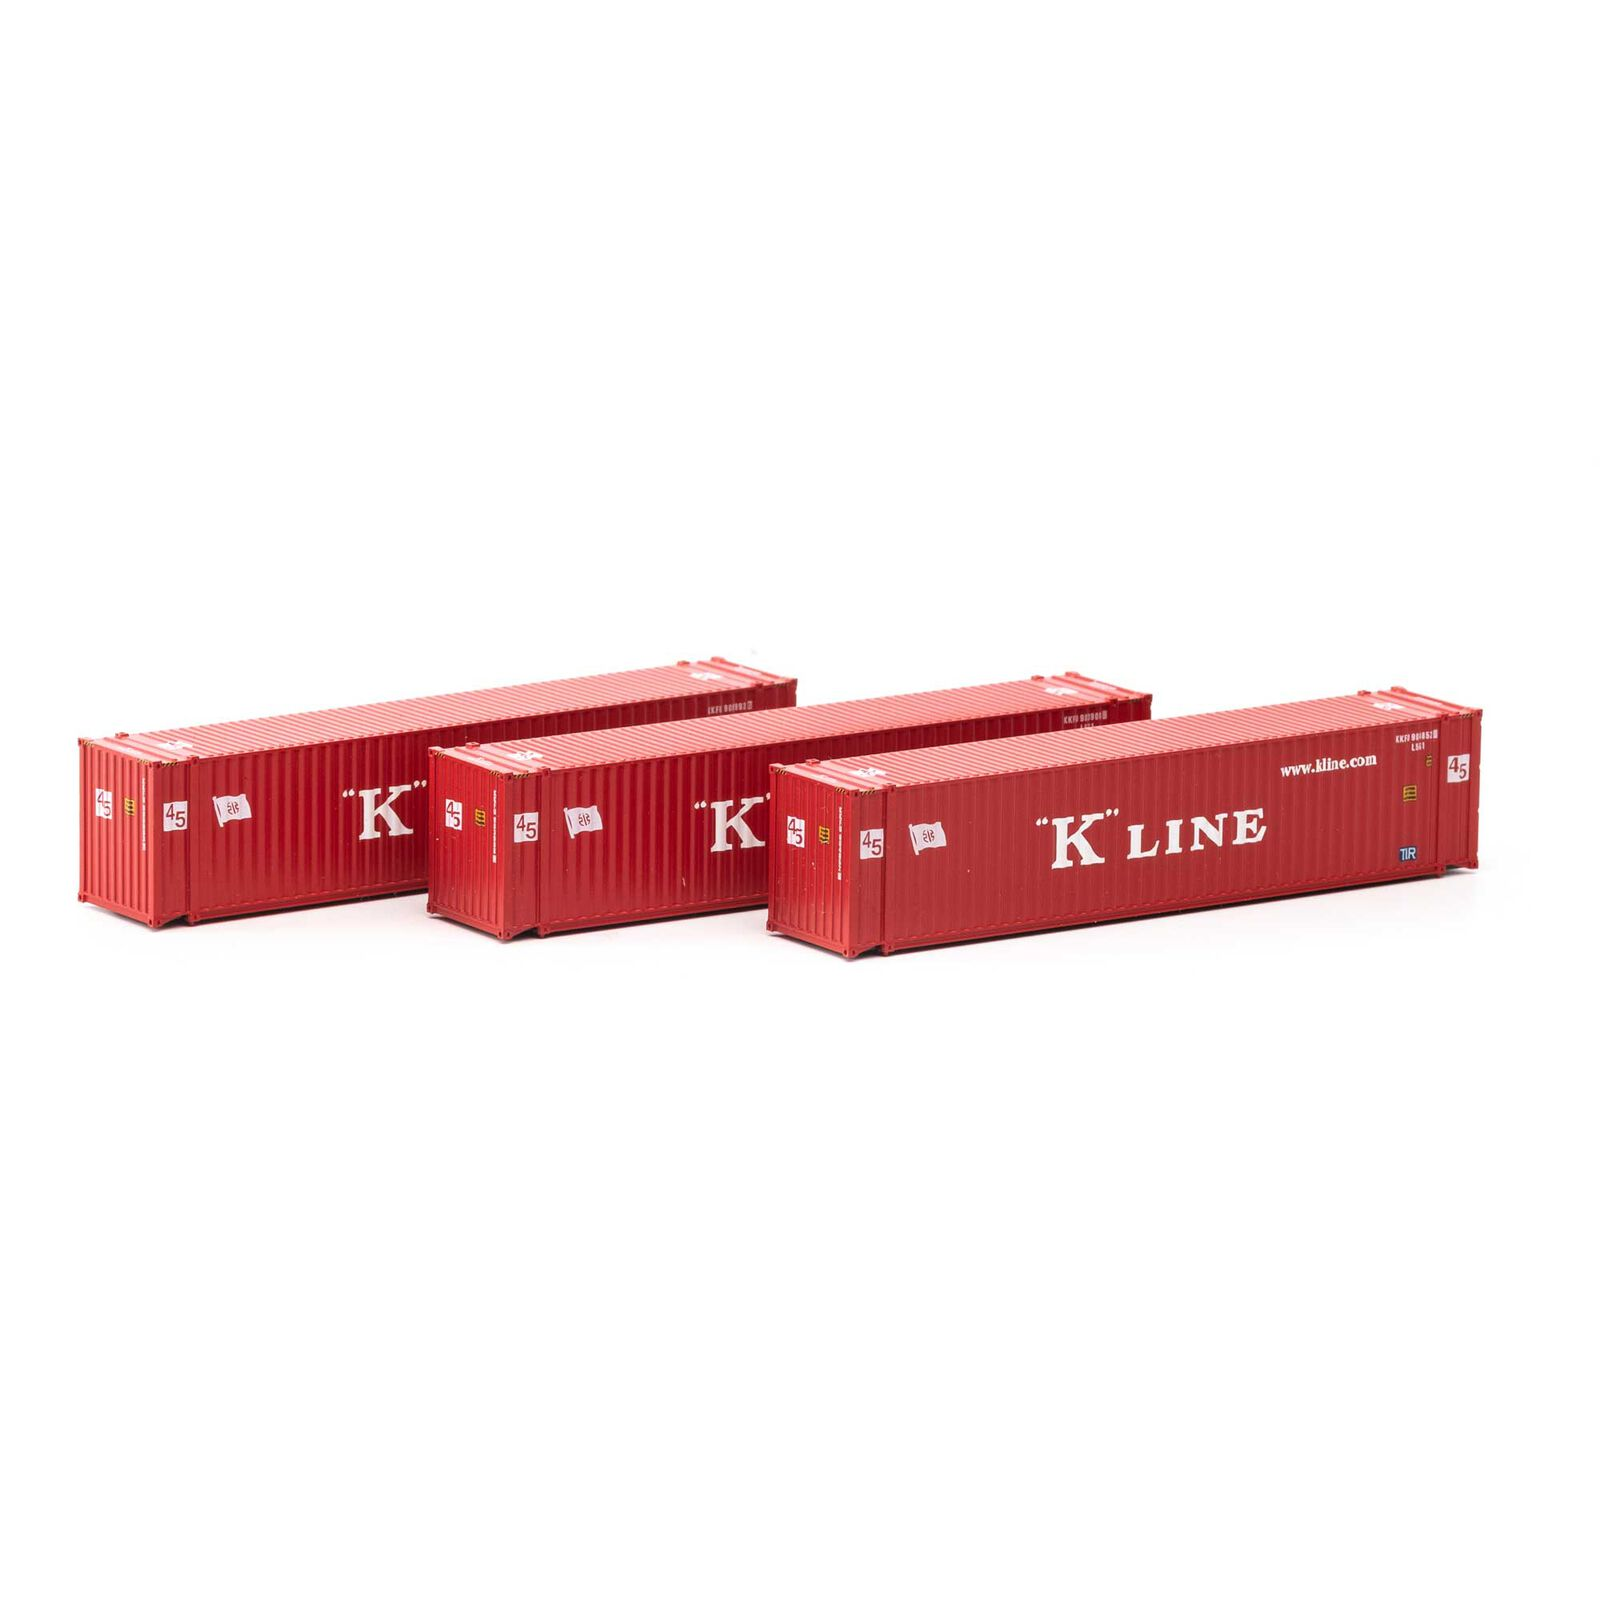 N 45' Container K-Line (3)